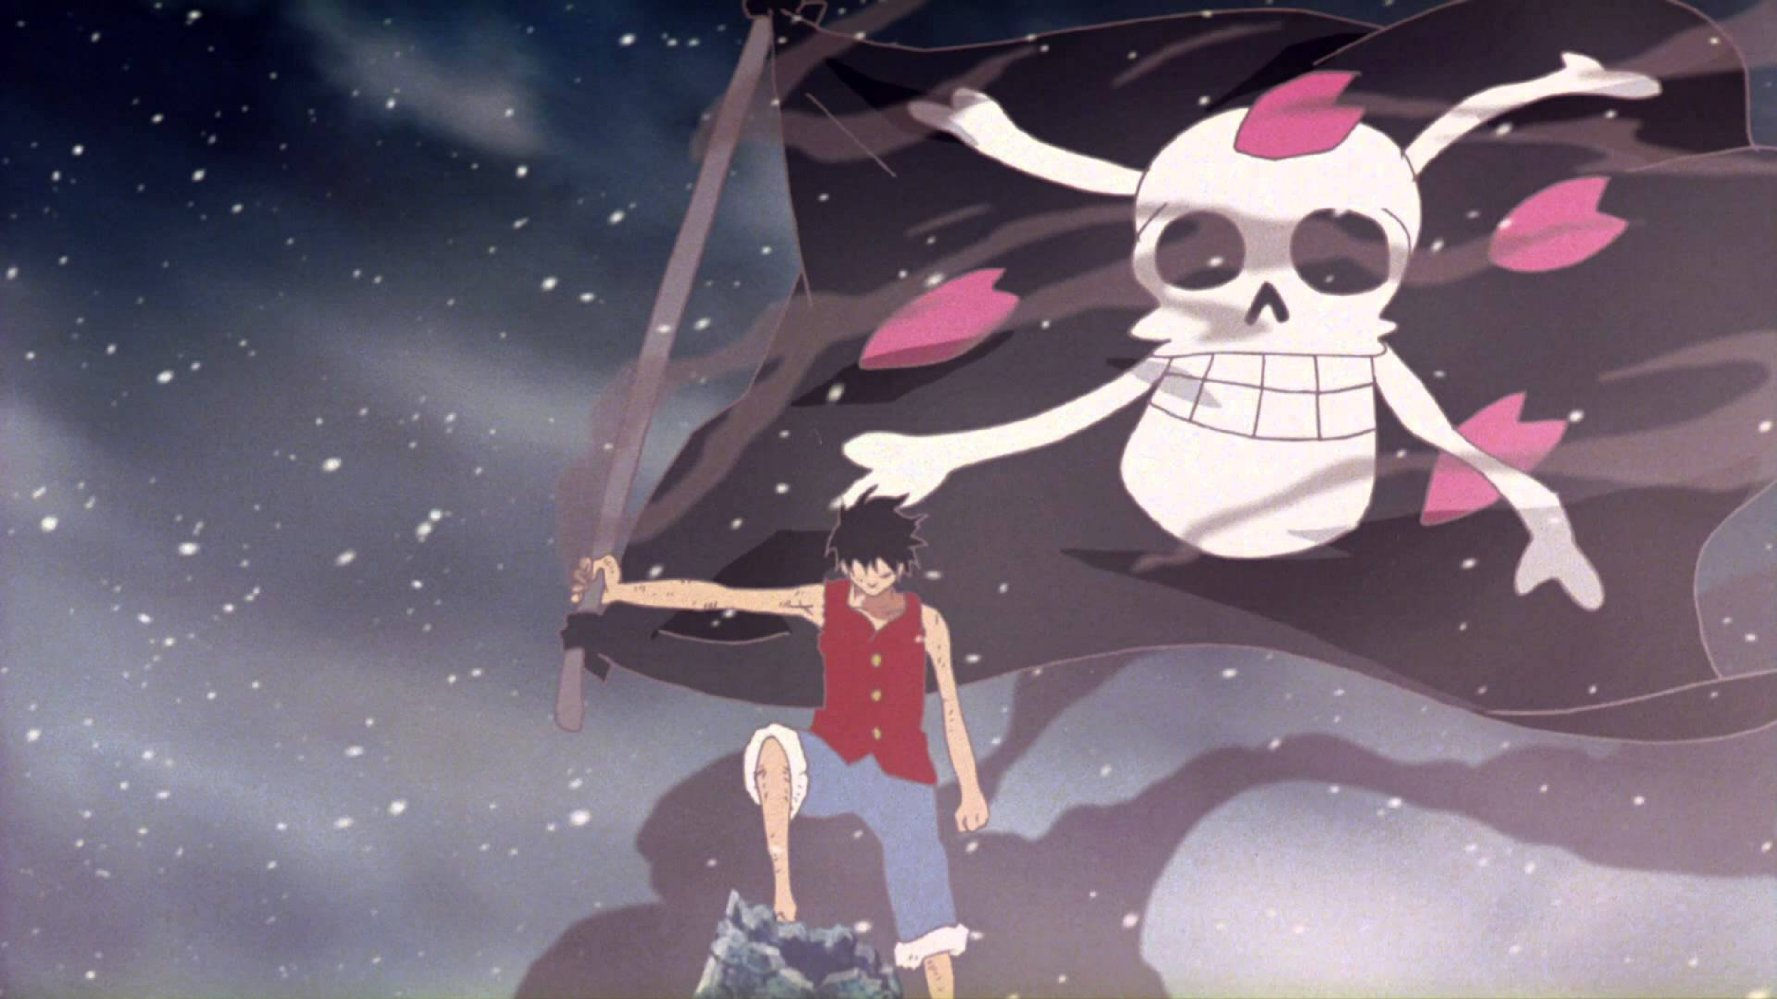 One Piece The Movie 09: Episode of Chopper Plus - Bloom in the Winter, Miracle Sakura